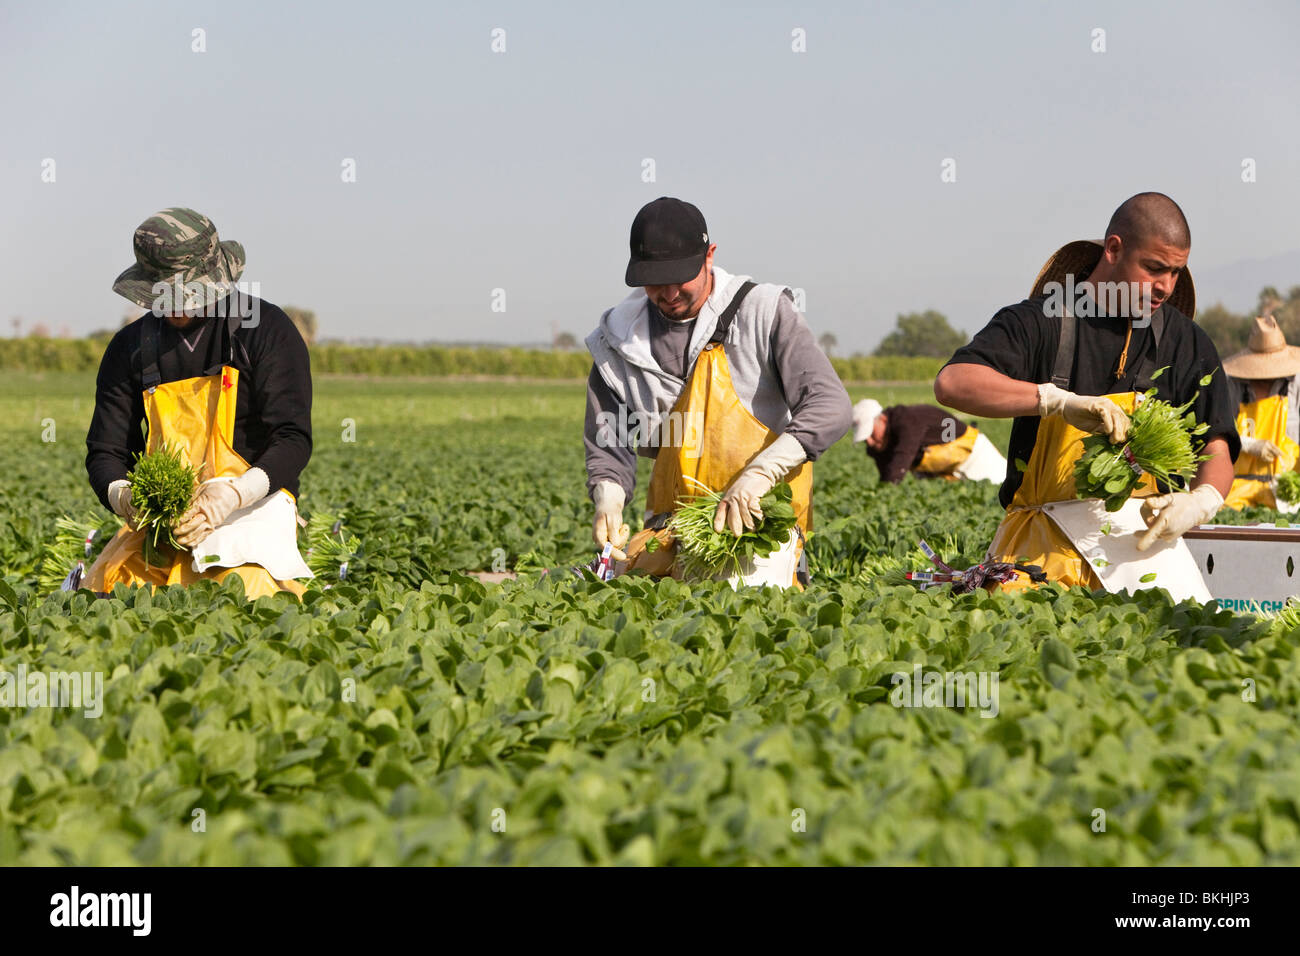 Spinach 'Spinacea oleracea', workers harvesting. - Stock Image